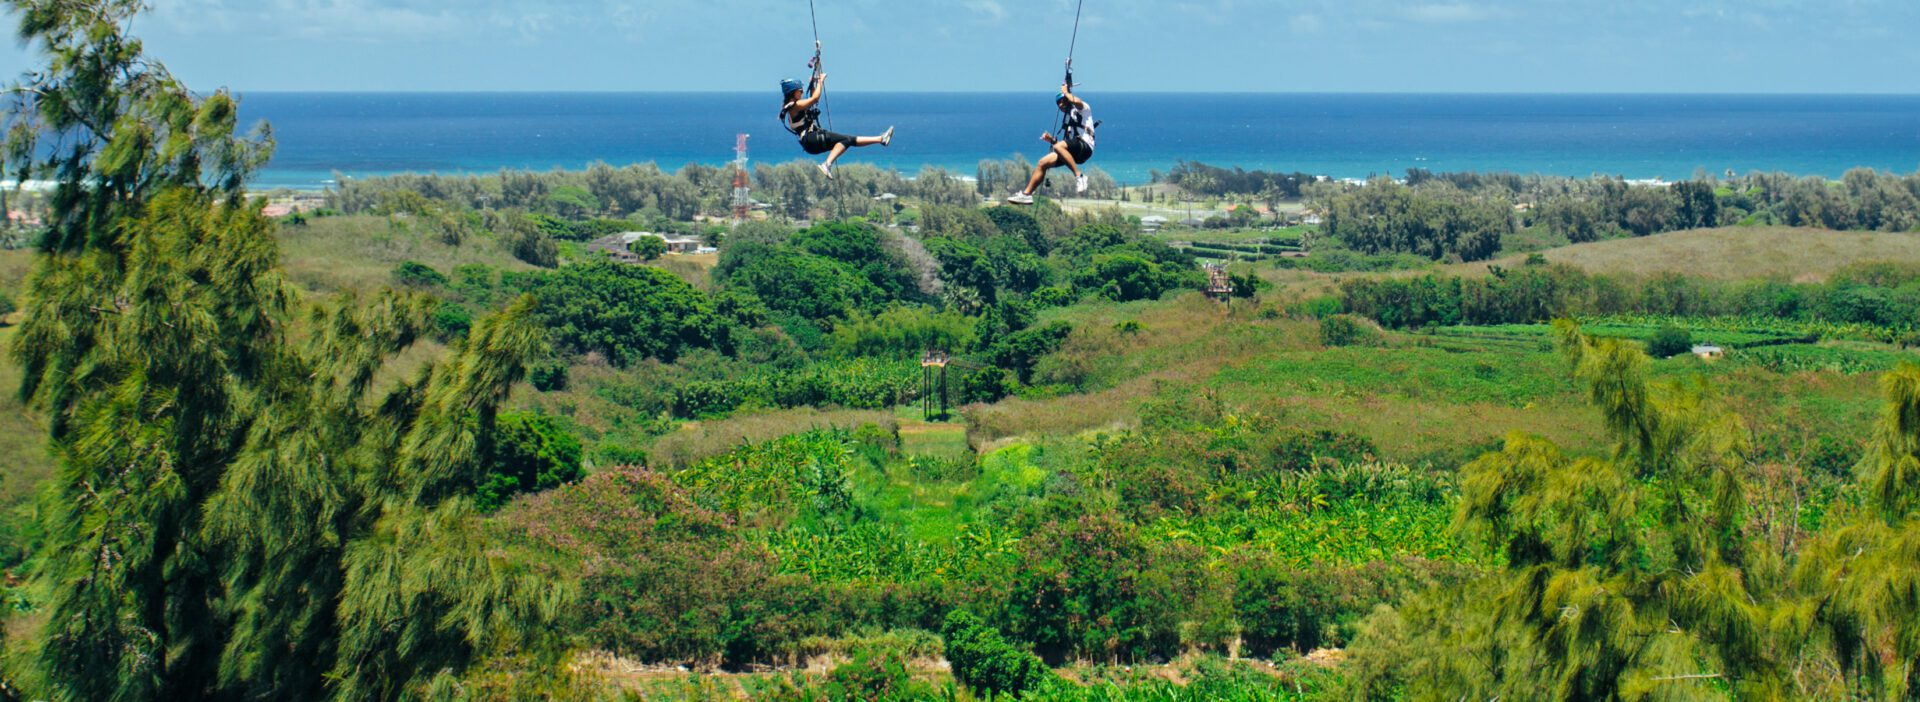 How We Keep You Safe During Your Oahu Zipline Adventure